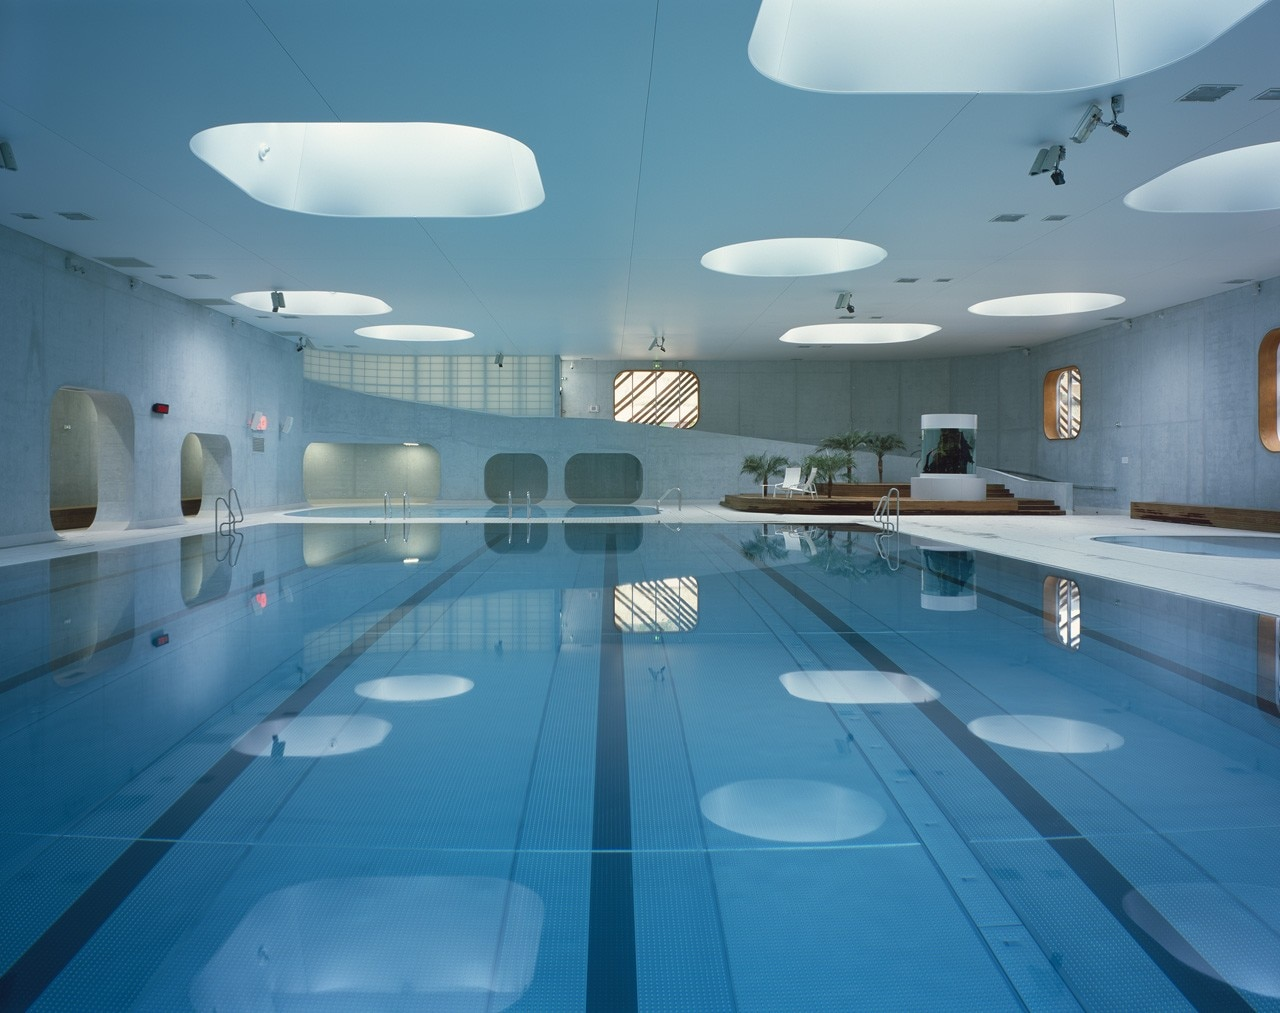 Feng shui swimming pool domus - According to jim the swimming pool ...